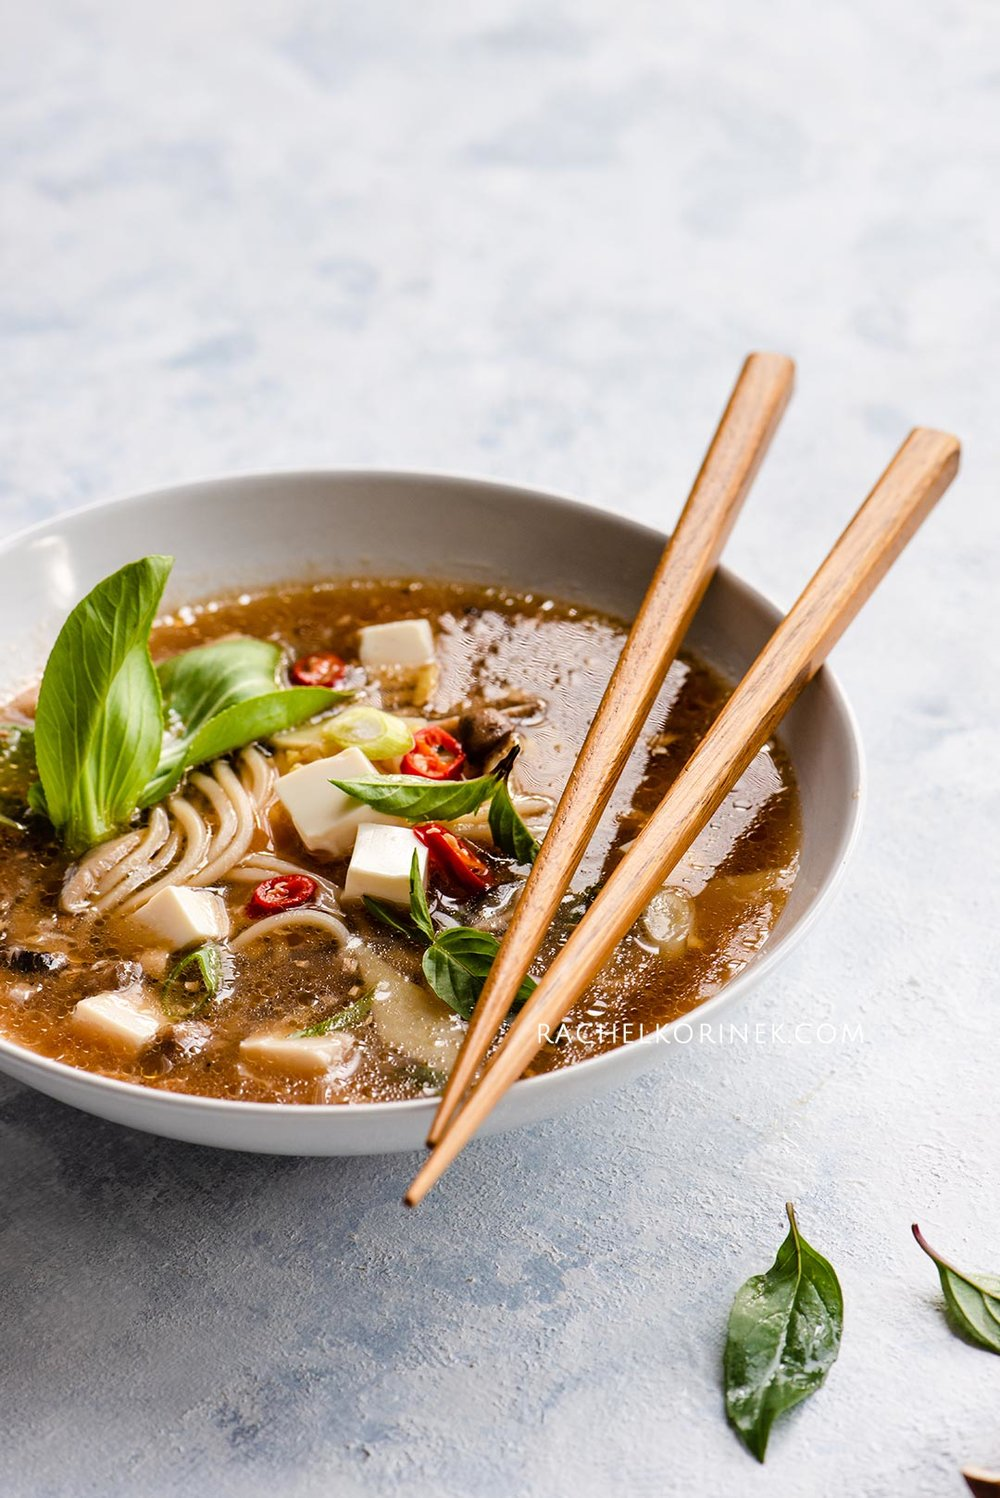 Rachel Korinek Food Photography | Hot Sour Soup  Click to check out my latest food photography projects.  #twolovesstudio #beautifulcuisine #foodbloggerpro #foodphotography #learnfoodphotography #foodblogger #learnphotography #foodstyling #lightingtips #naturallight #foodphotographer